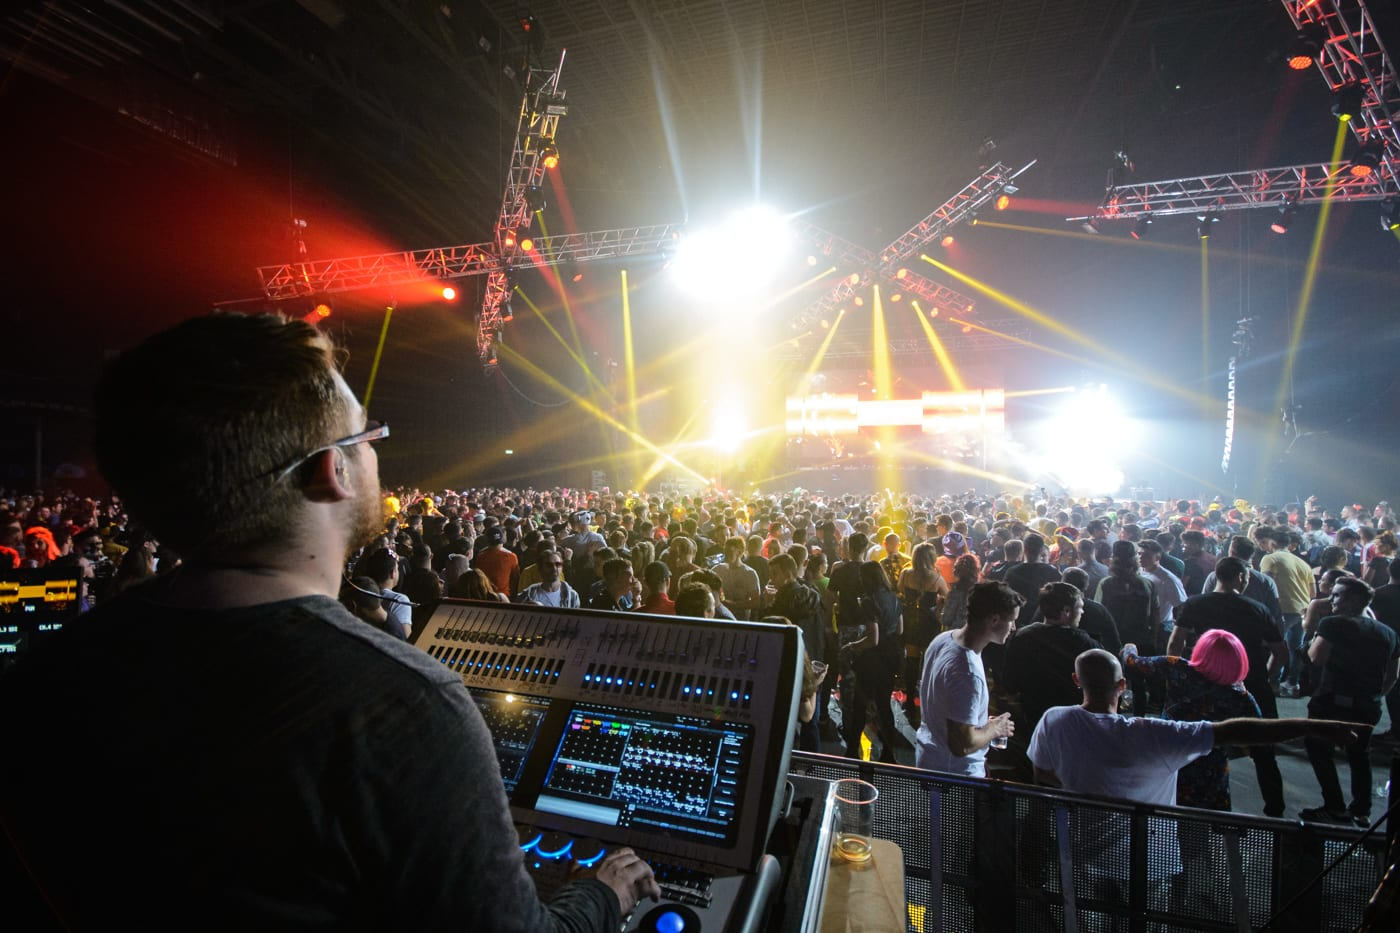 winterparty-at-3arena-dublin-30-10-2016-by-sean-smyth-35-of-53